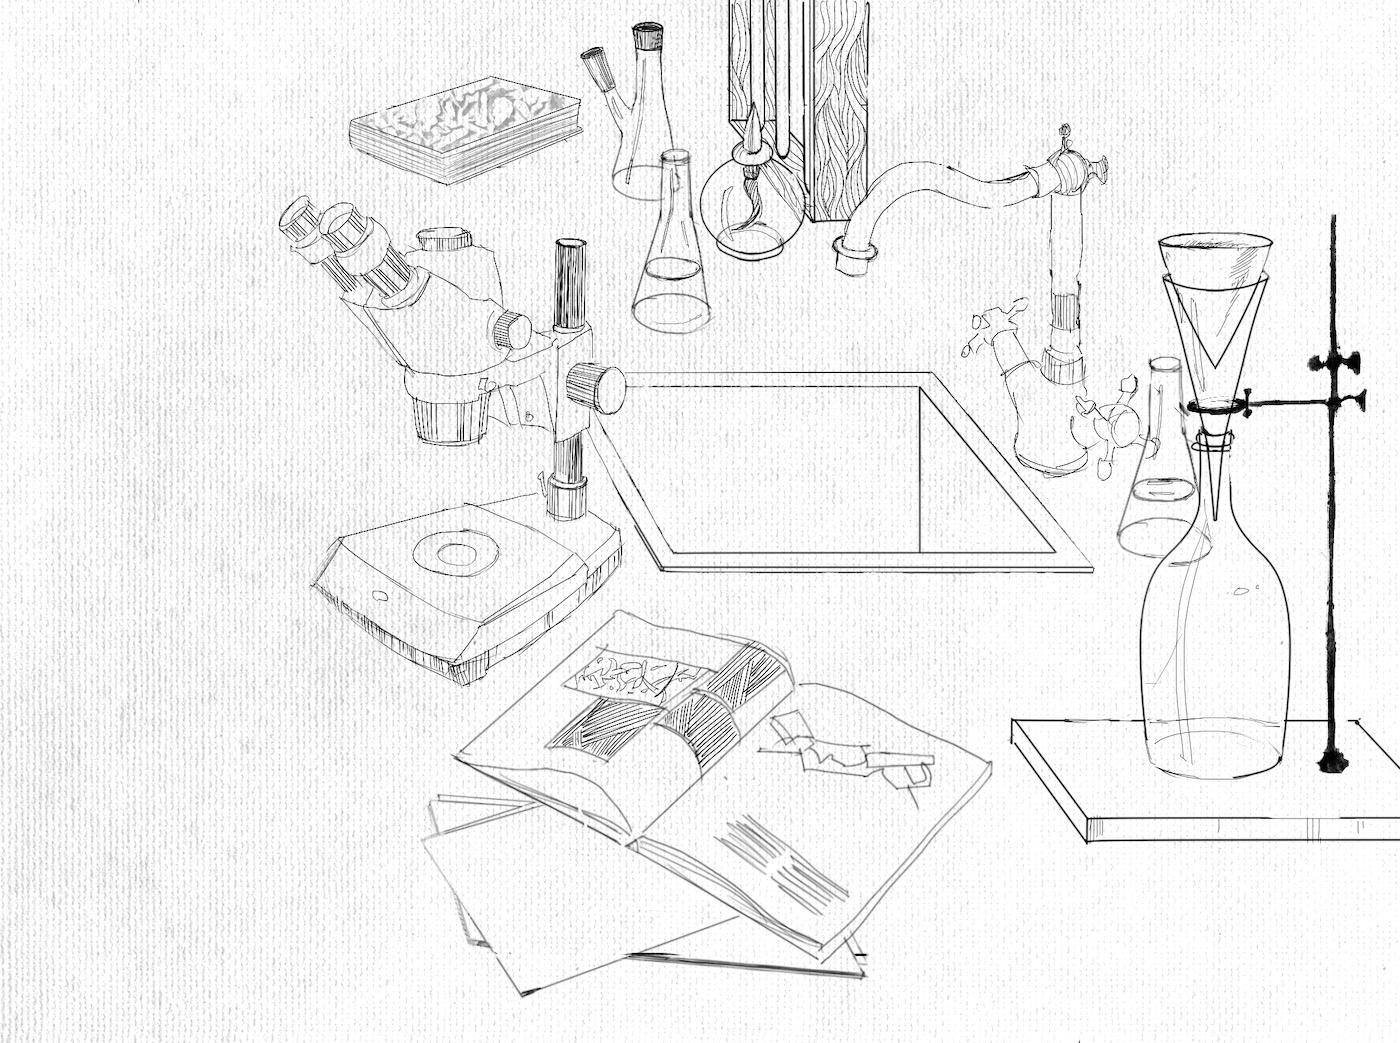 Drawing by Viktoriia Shcherbak of inventor's desk.